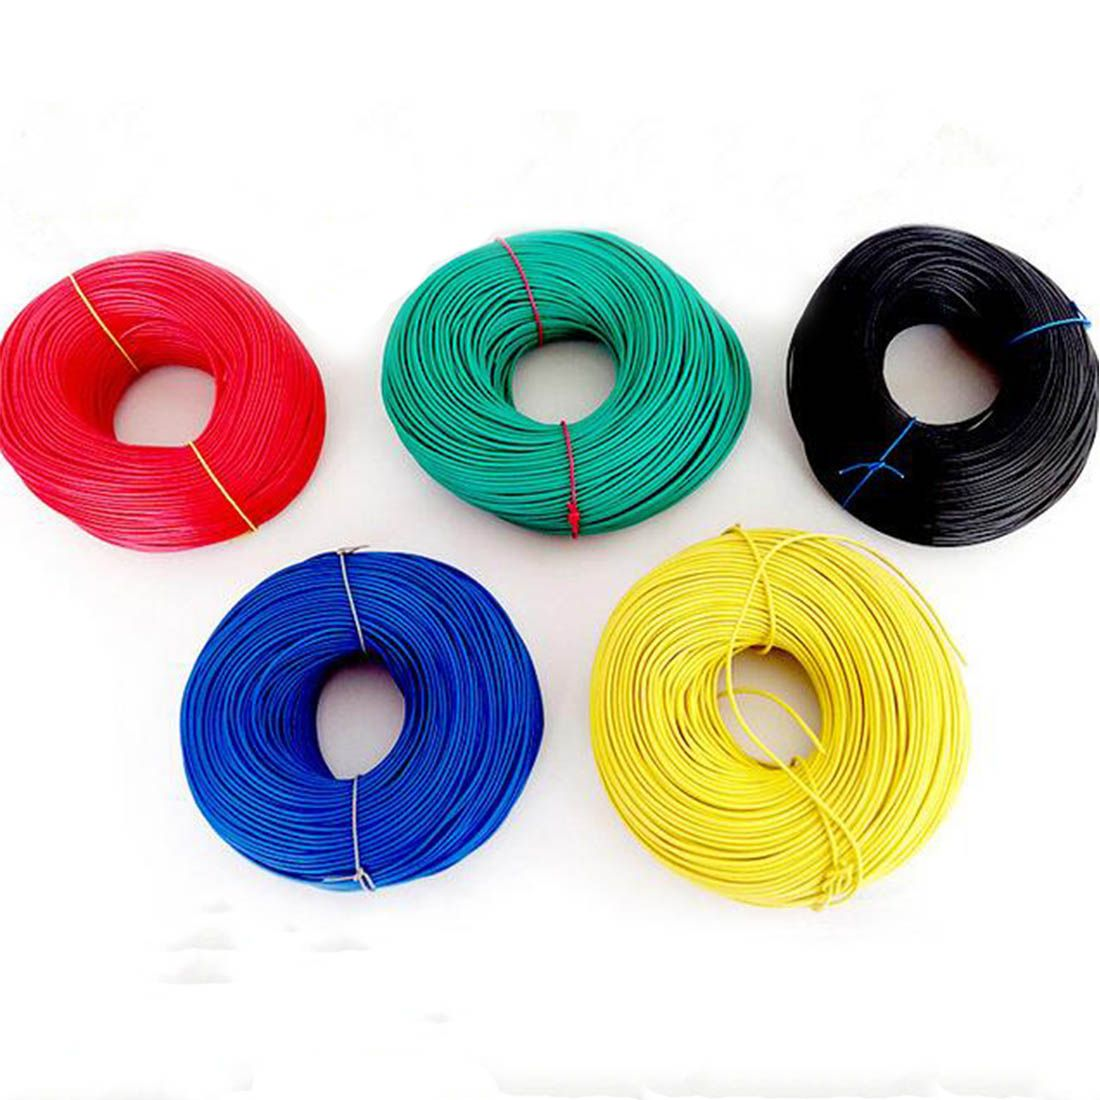 VENSTPOW 10meters/lot 17AWG RV wire 1.0mm Multi-strand Flexible Stranded Cord Electrical Equipment Copper Core PVC Wire DIY